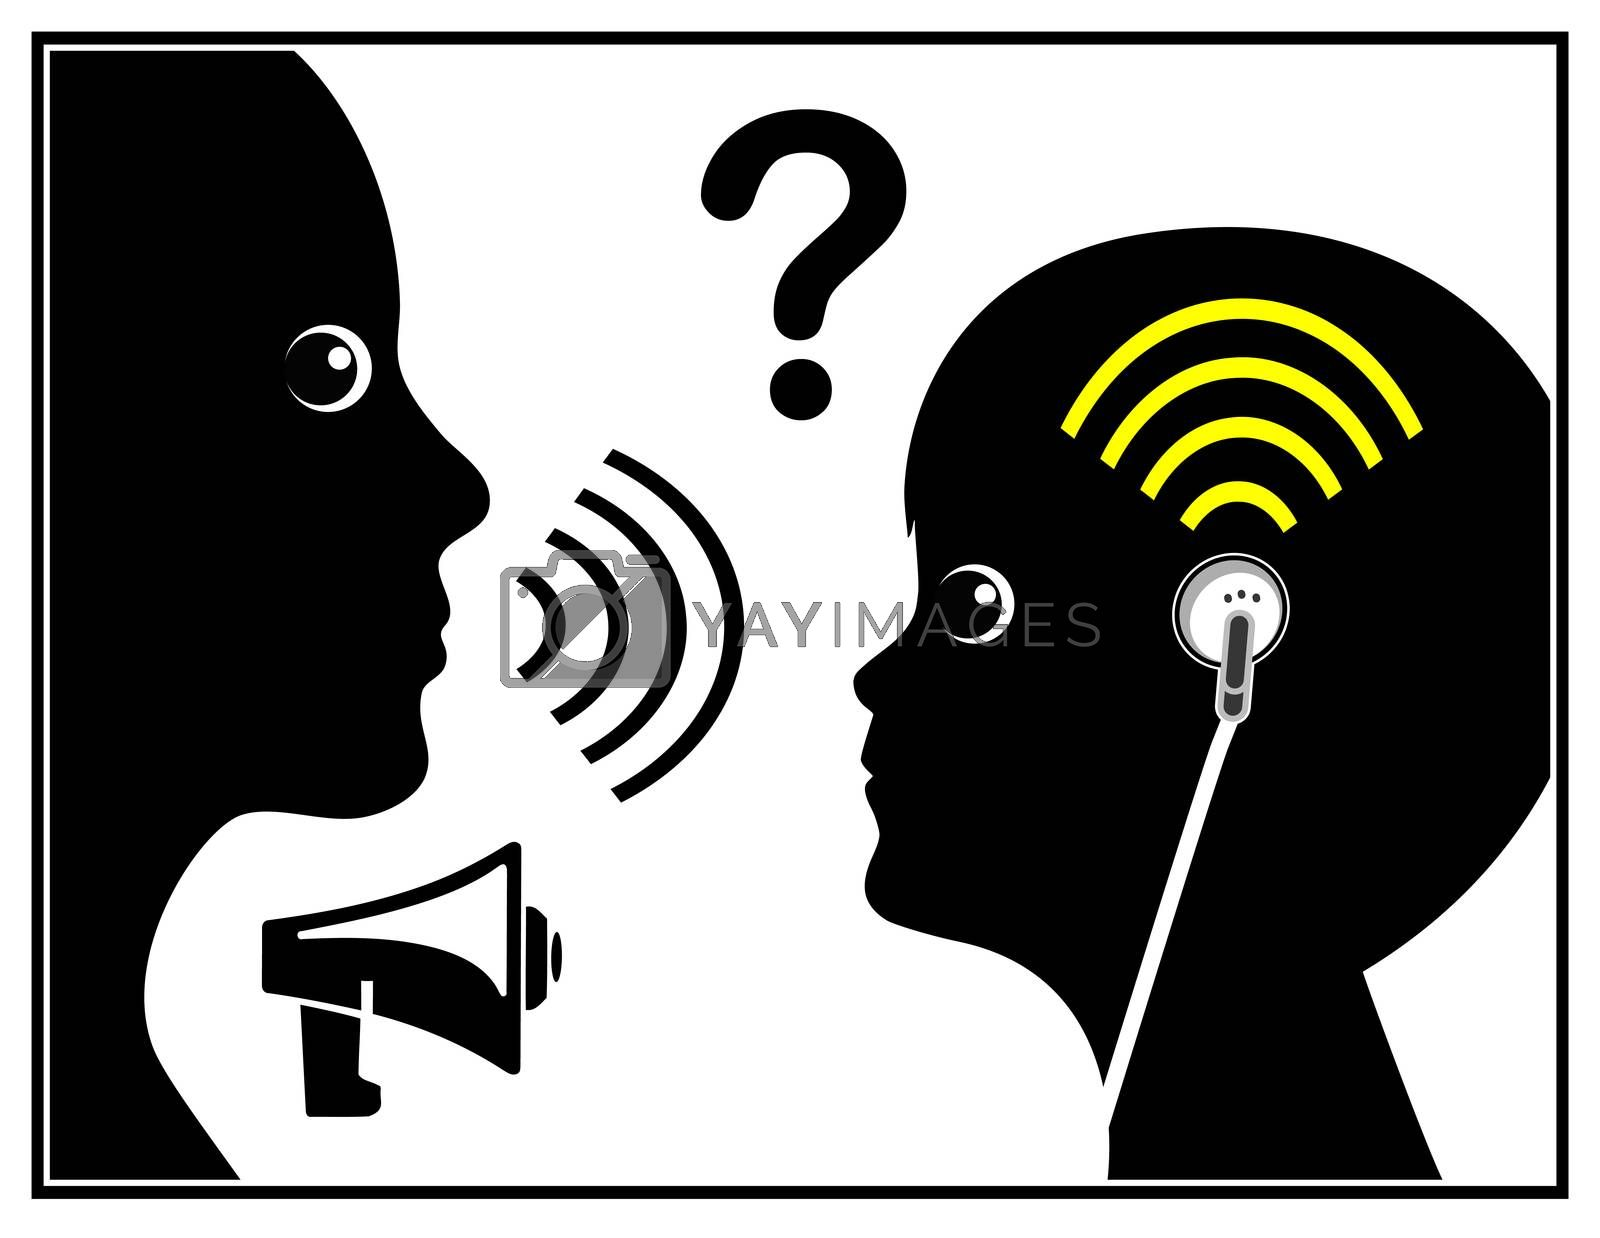 Concept sign of the generation deaf due to ear buds and loud music